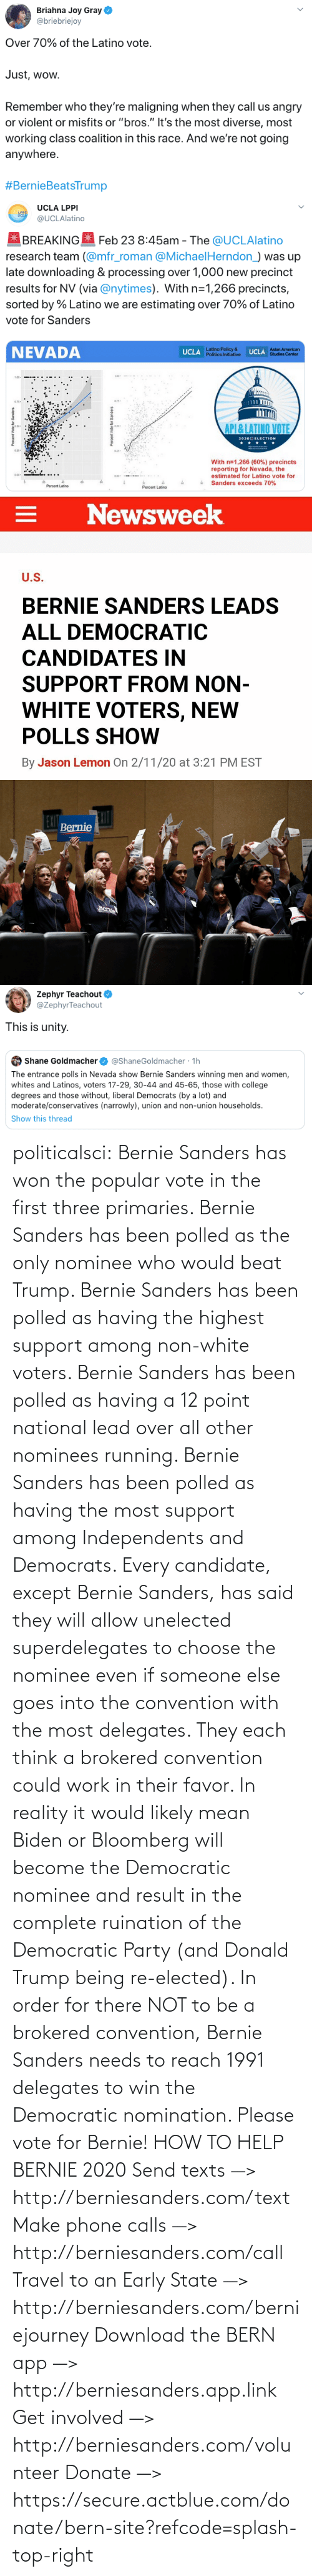 Bernie: politicalsci: Bernie Sanders has won the popular vote in the first three primaries. Bernie Sanders has  been polled as the only nominee who would beat Trump. Bernie Sanders  has been polled as having the highest support among non-white voters.  Bernie Sanders has been polled as having a 12 point national lead over  all other nominees running. Bernie Sanders has been polled as having the most support among Independents and Democrats.  Every candidate, except Bernie Sanders, has said they will allow  unelected superdelegates to choose the nominee even if someone else goes  into the convention with the most delegates. They each think a brokered  convention could work in their favor. In  reality it would likely mean Biden or Bloomberg will become the  Democratic nominee and result in the complete ruination of the  Democratic Party (and Donald Trump being re-elected). In order for there  NOT to be a brokered  convention, Bernie Sanders needs to reach 1991 delegates to win the  Democratic  nomination. Please vote for Bernie!  HOW TO HELP BERNIE 2020 Send texts —> http://berniesanders.com/text  Make phone calls —> http://berniesanders.com/call  Travel to an Early State —> http://berniesanders.com/berniejourney  Download the BERN app —> http://berniesanders.app.link  Get involved —> http://berniesanders.com/volunteer Donate —> https://secure.actblue.com/donate/bern-site?refcode=splash-top-right